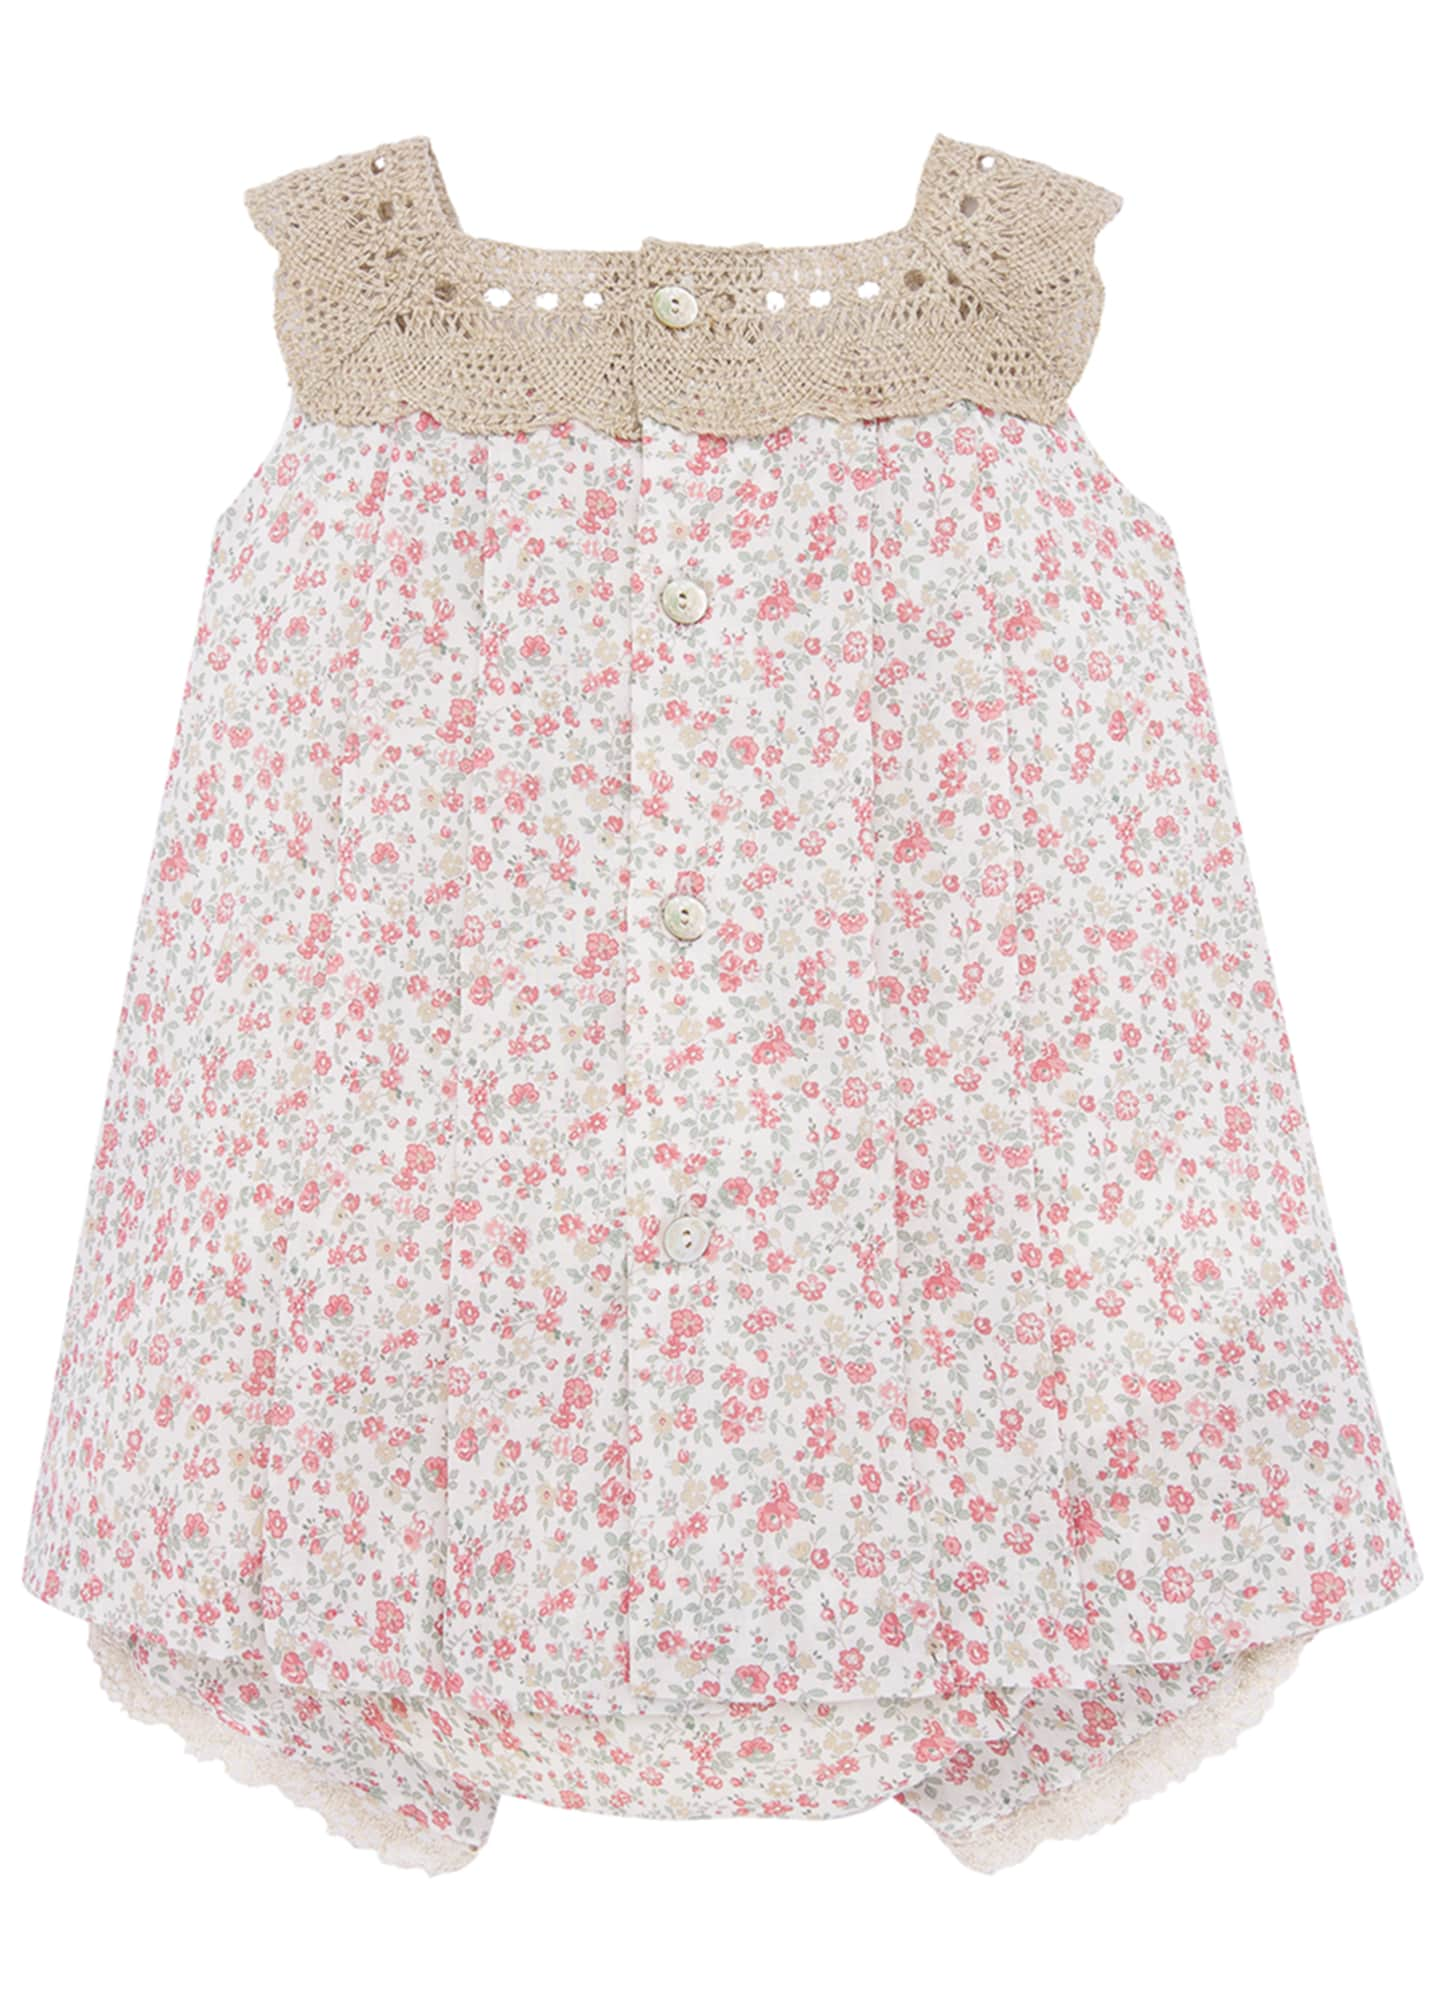 Image 2 of 2: Girl's Floral Print Crochet Trim Dress w/ Bloomers, Size 3-24 Months